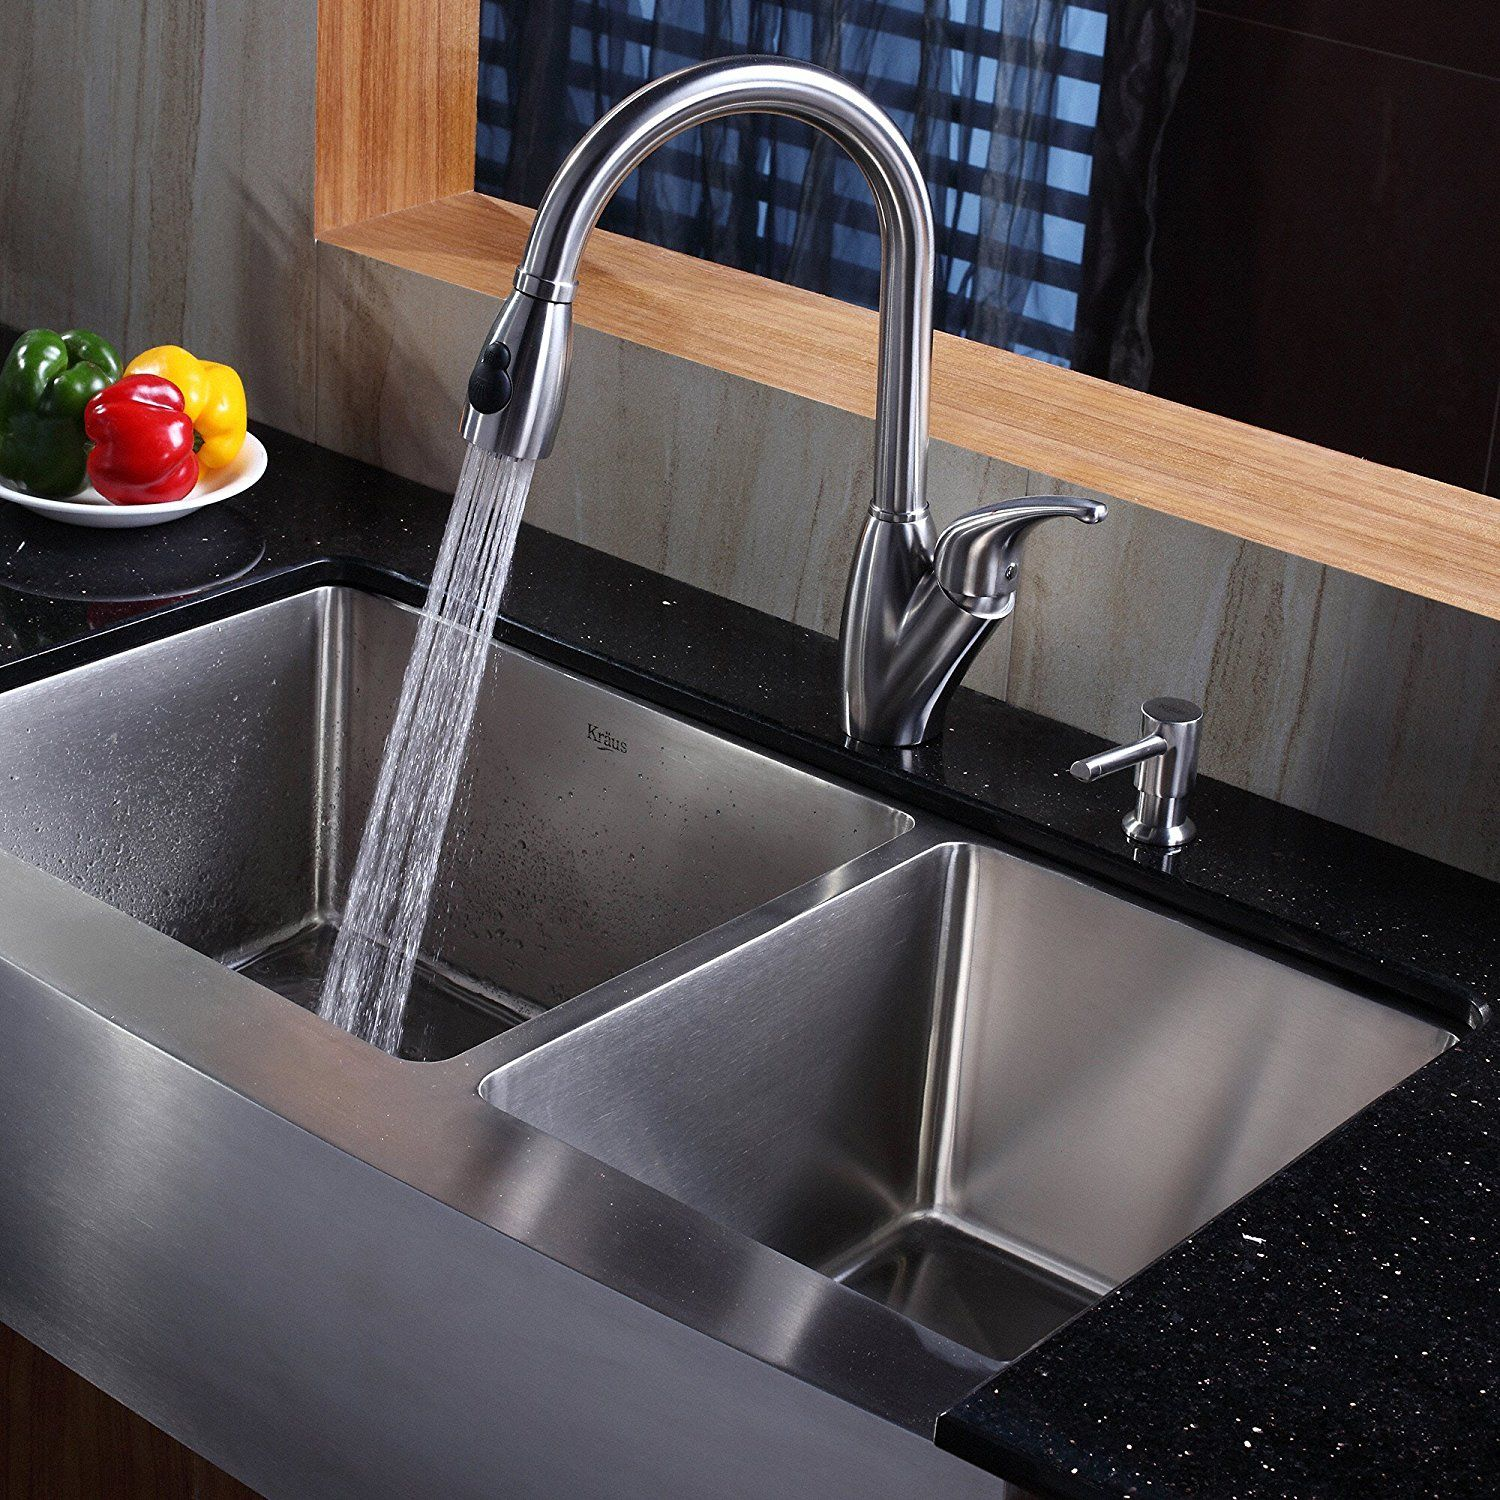 sink p and steel single bowl sinks kraus dispenser soap undermount stainless faucet with kitchen